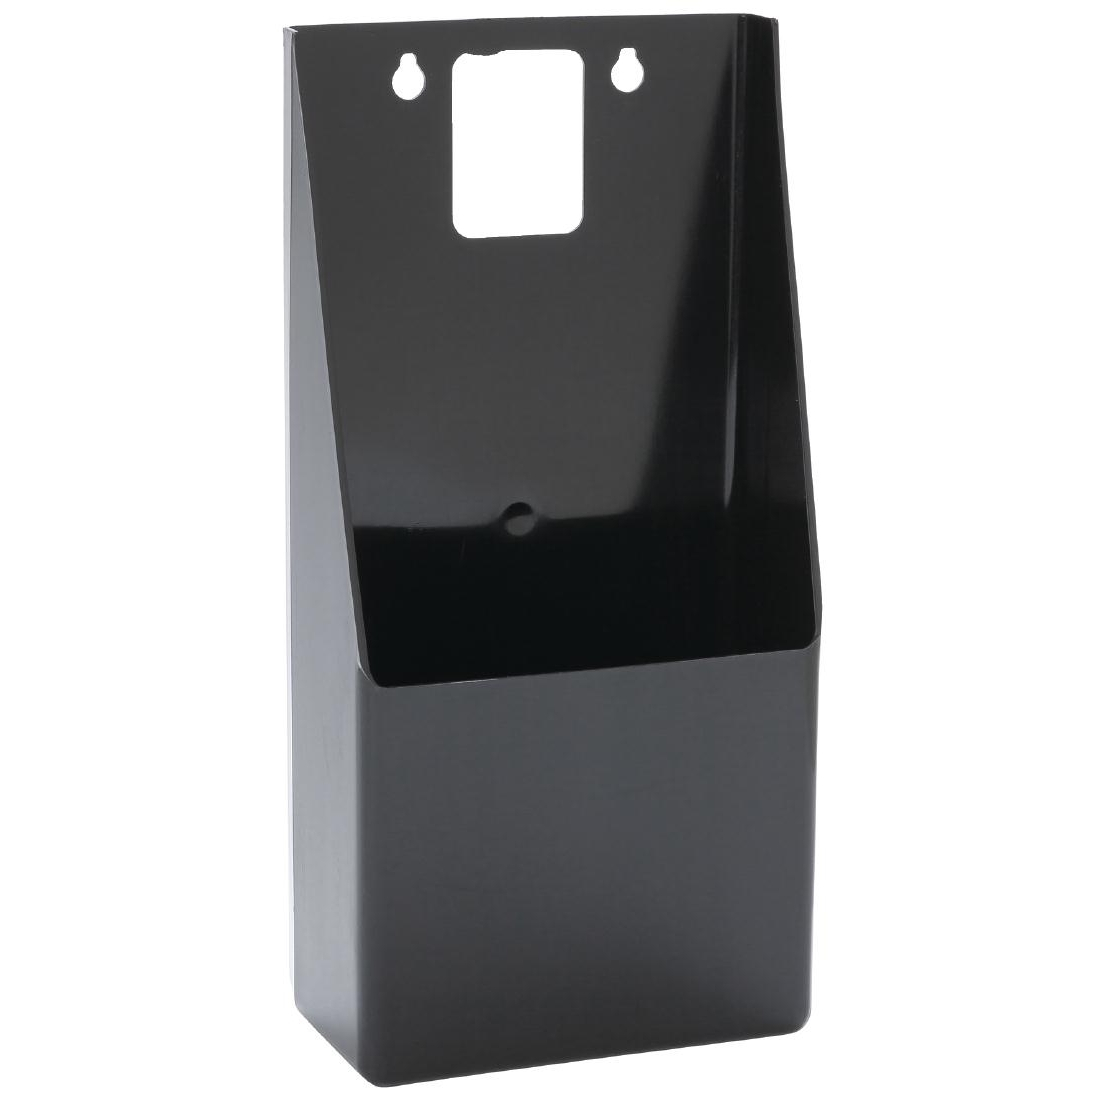 Beamont Box for Wall Mount Beer Bottle Opener